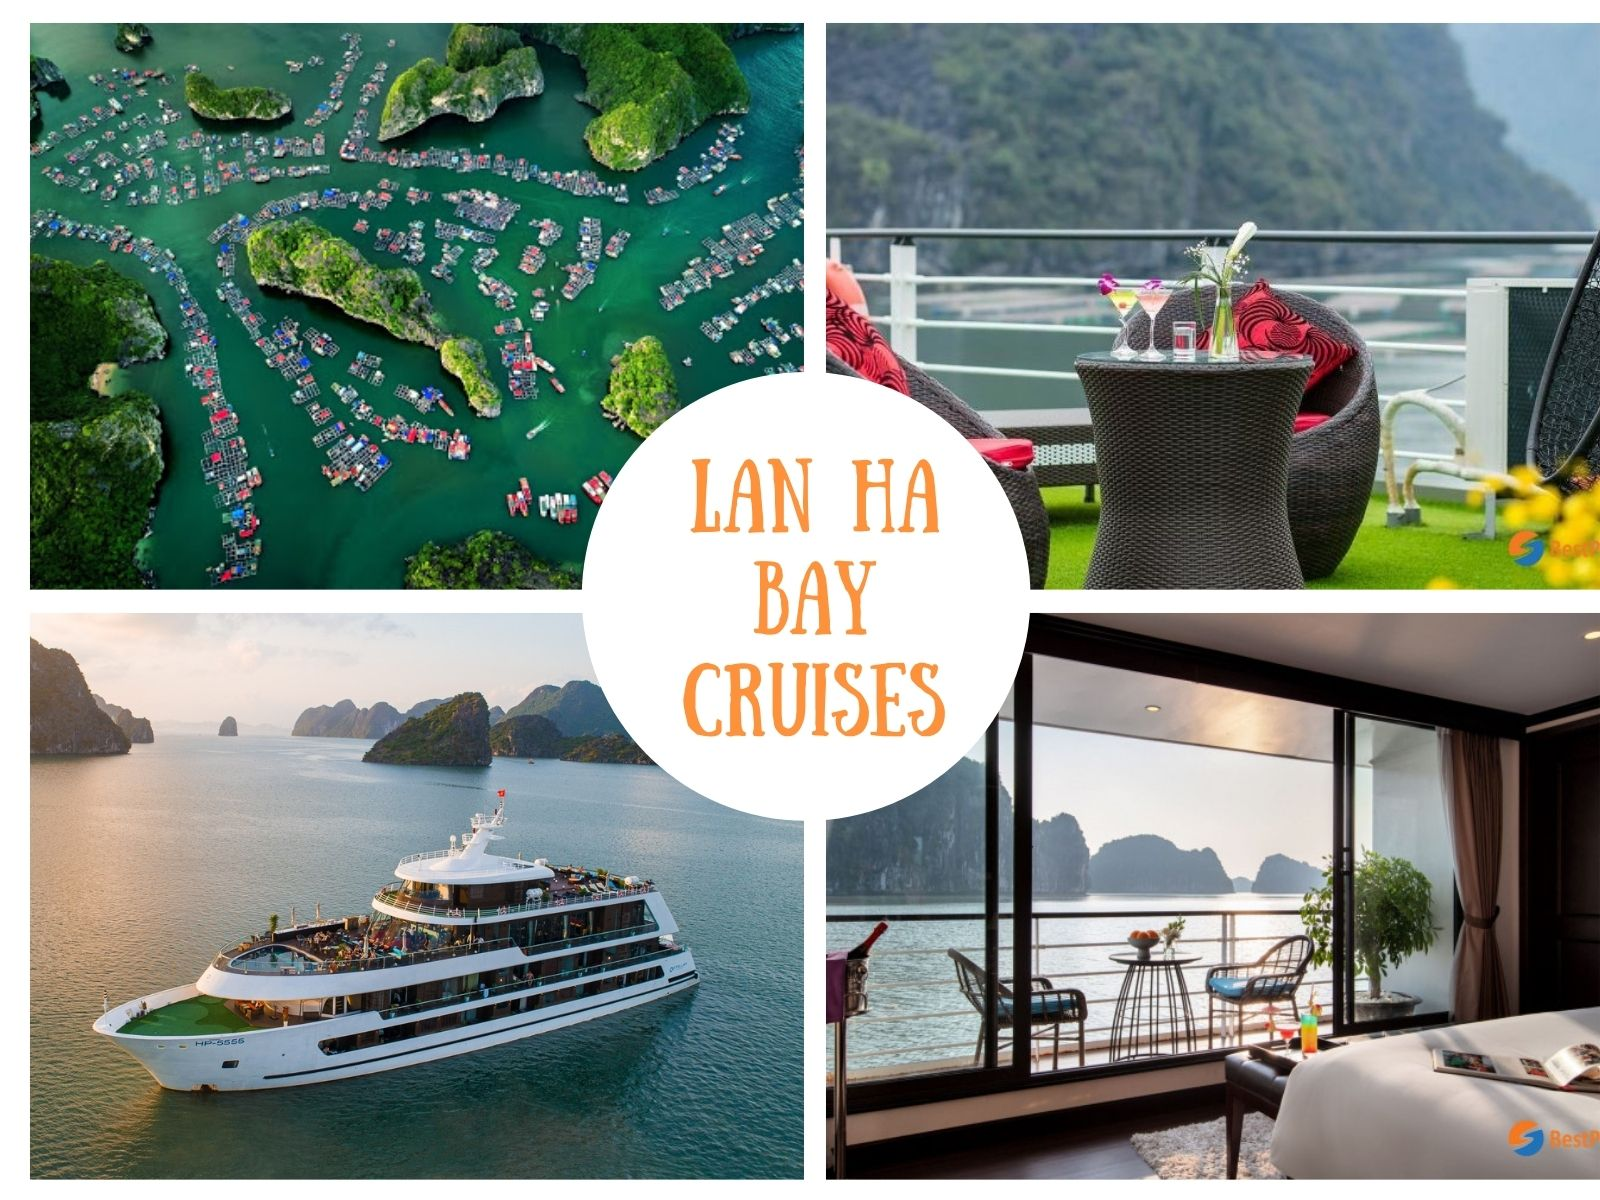 Lan Ha Bay Cruise